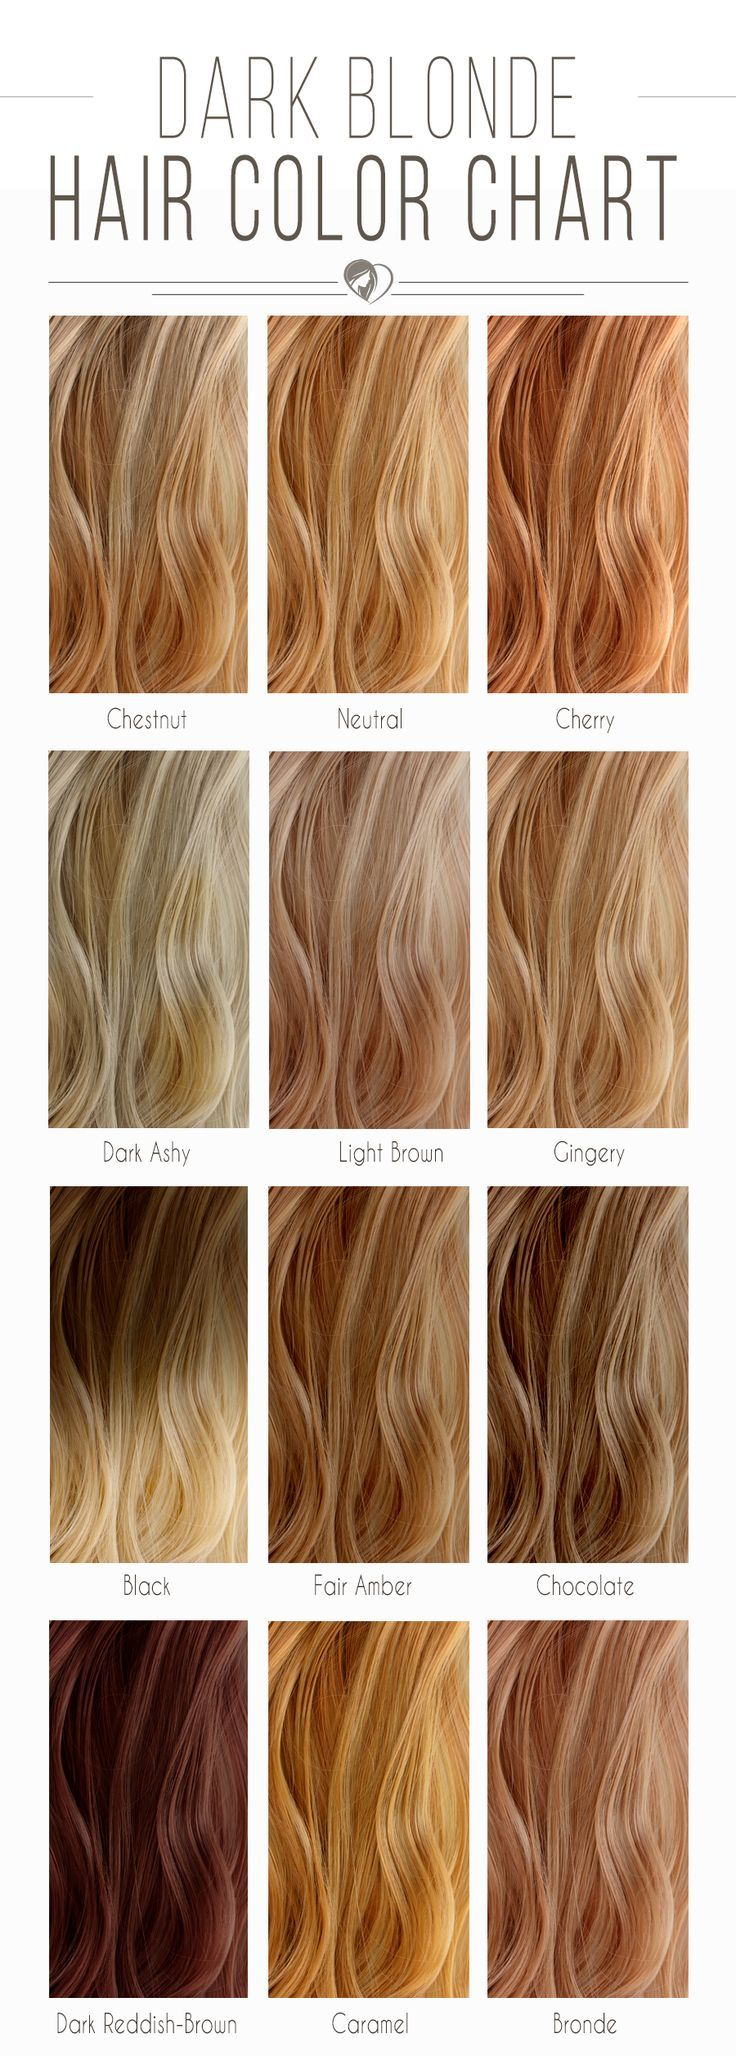 Hair Color 2017 2018 Dark Blonde Hair Color Chart Blondehair